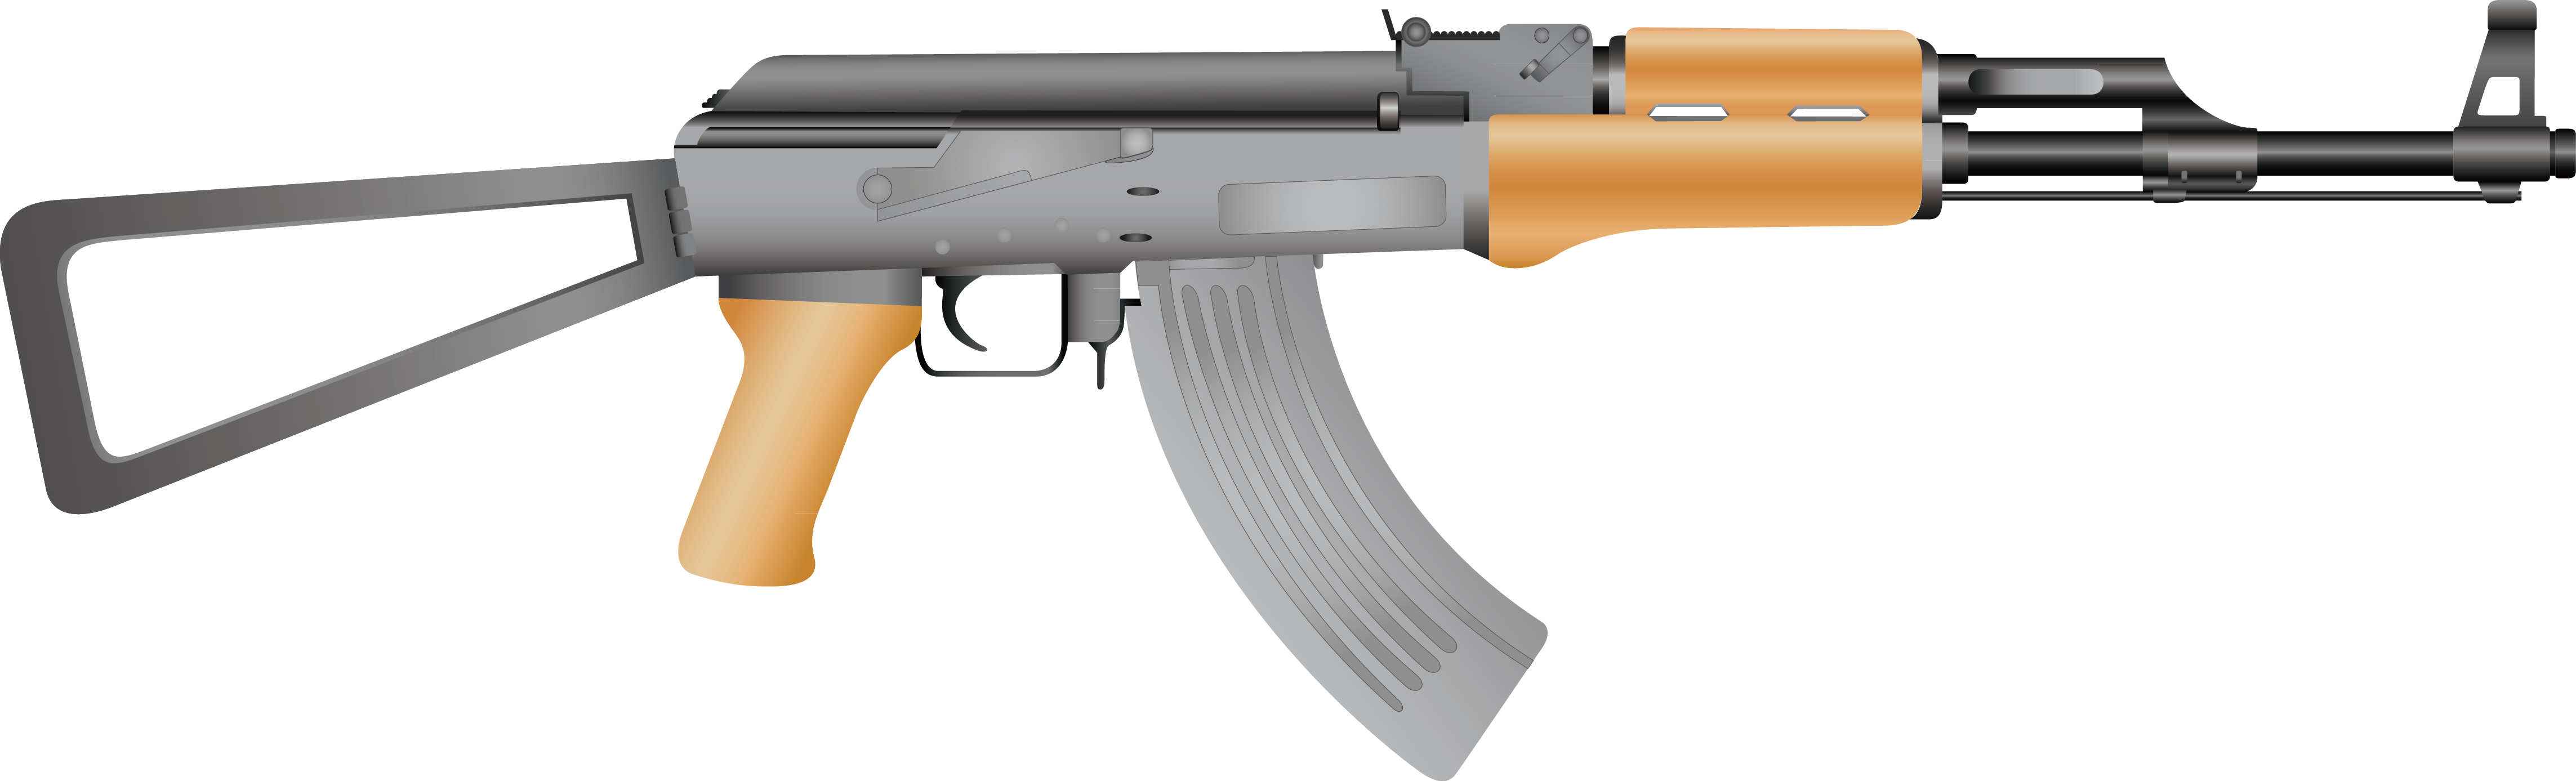 Ak drawing weapon. Bullet cartridge firearm hand